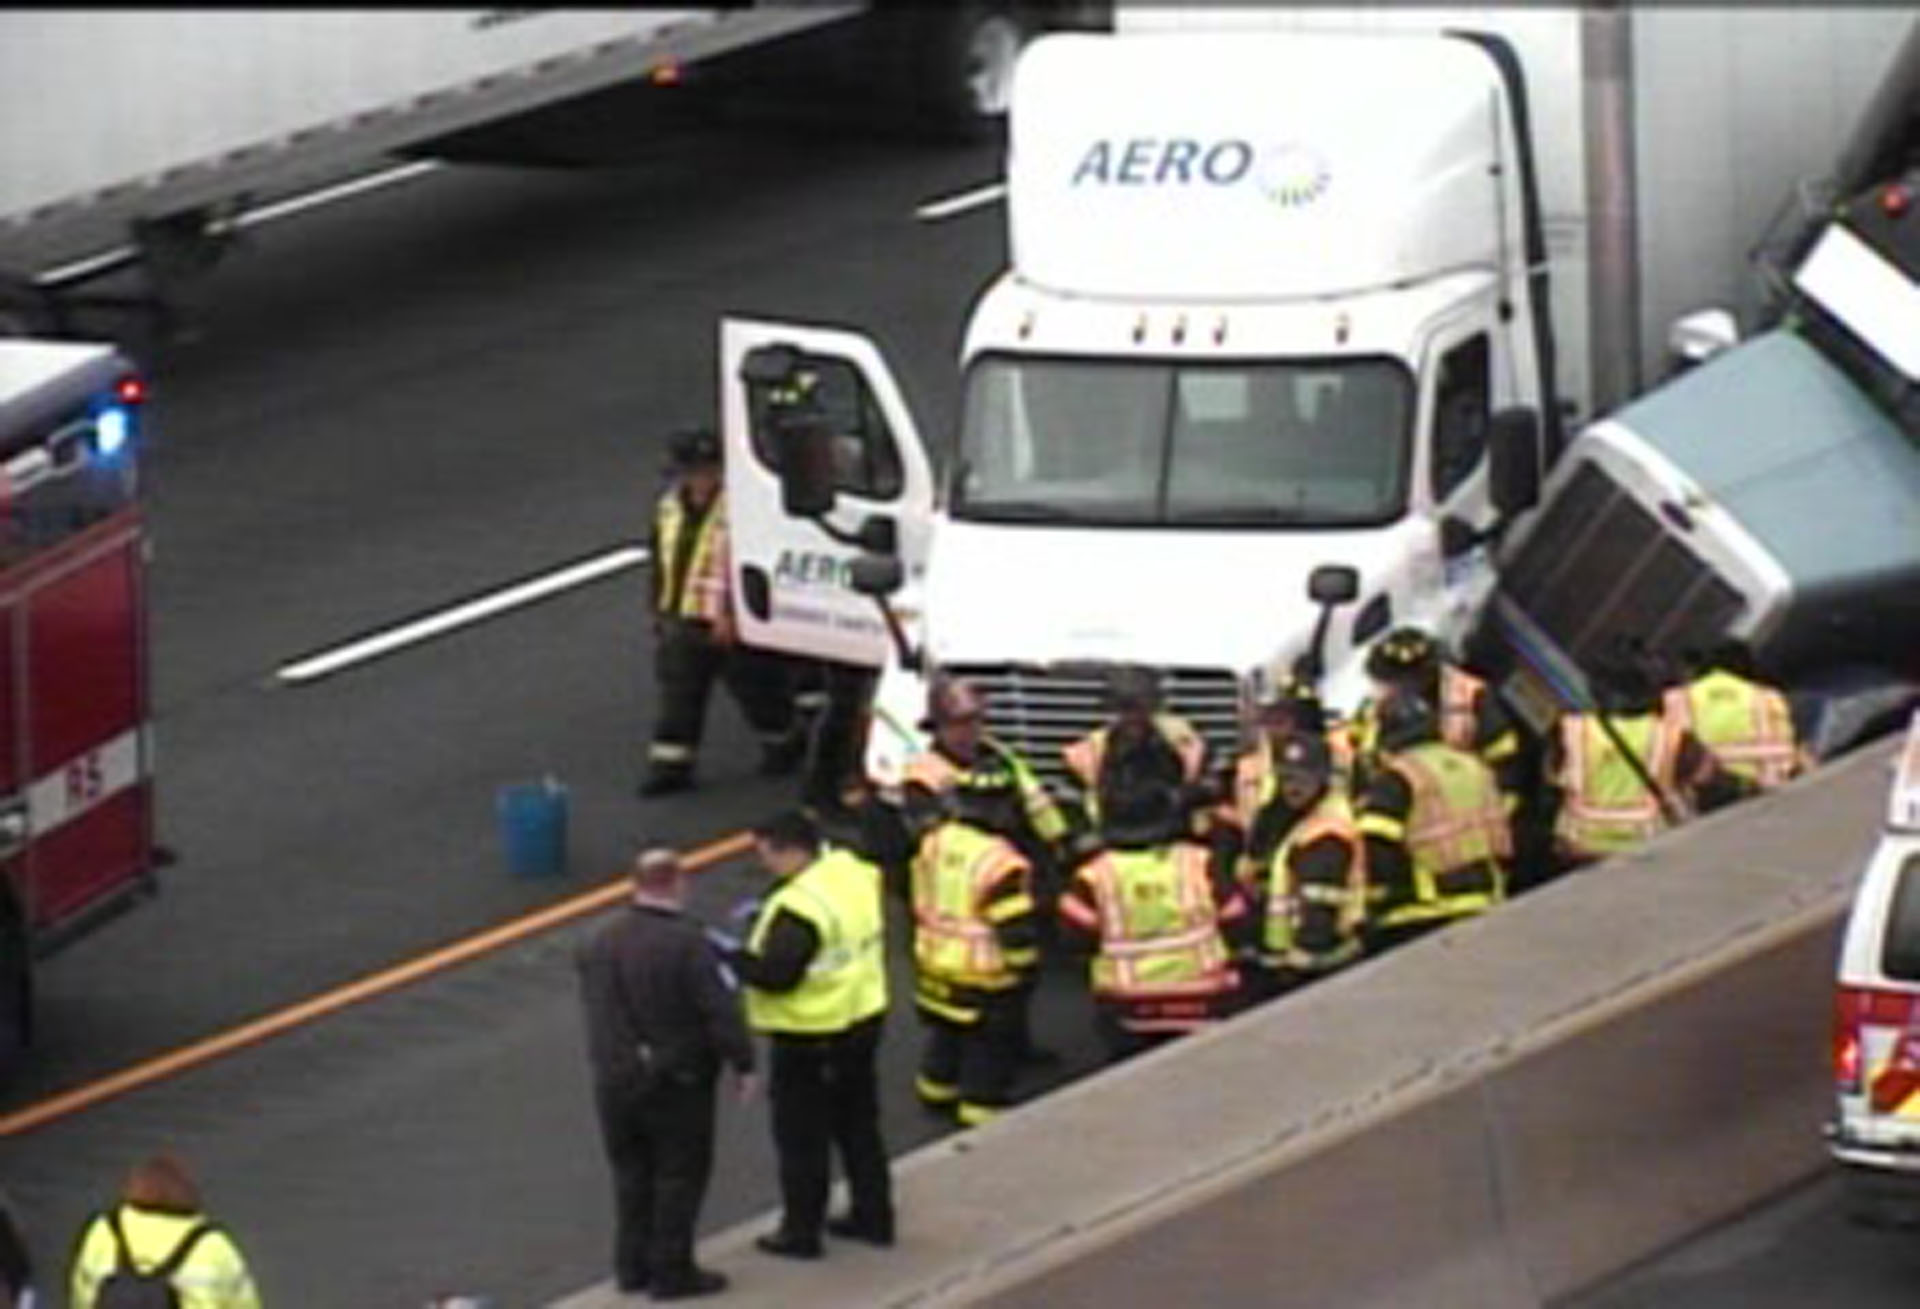 2 lanes closed on I-95 South in Bridgeport due to crash involving 2